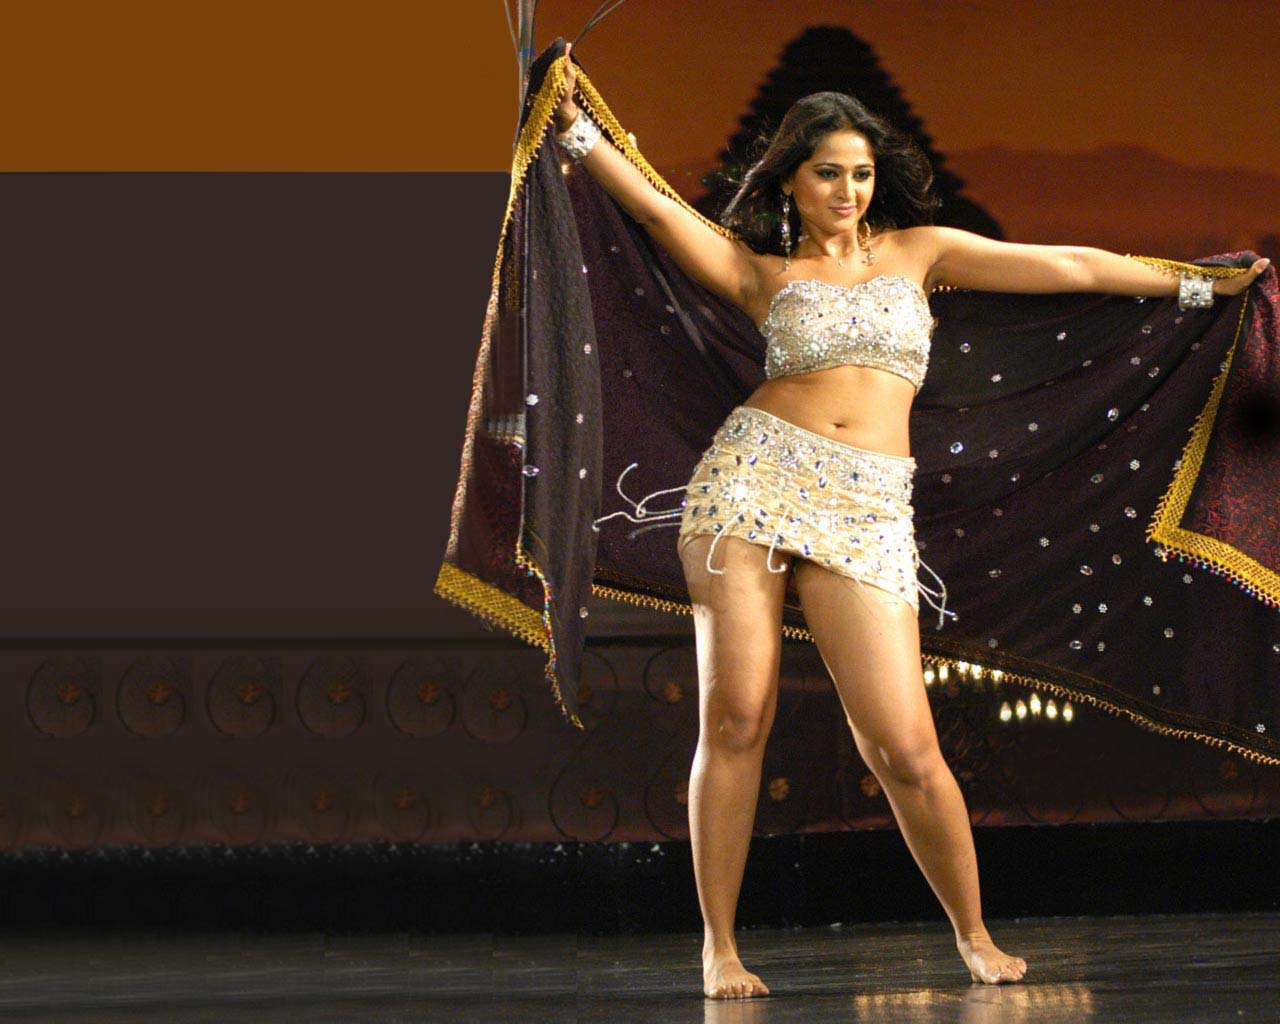 Anushka Shetty Hot tollywoodmore: ...